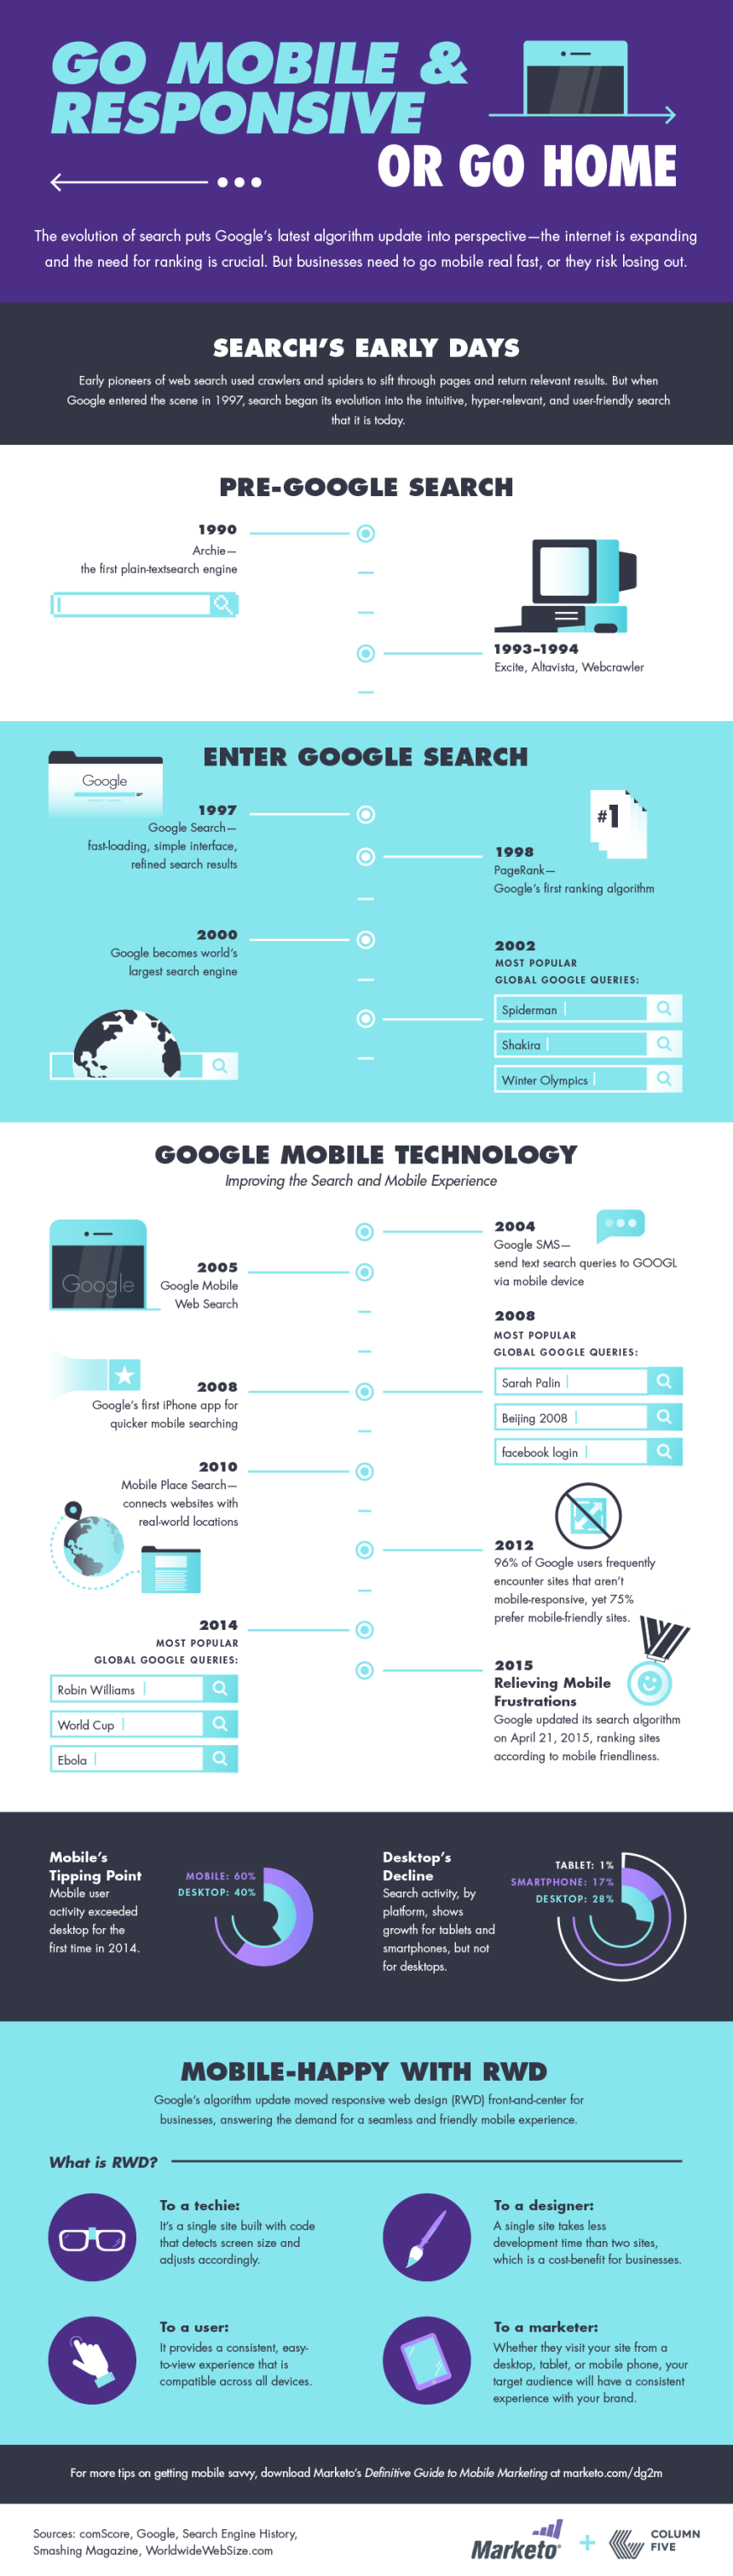 [Infographic] Go Mobile and Responsive...Or Go Home!